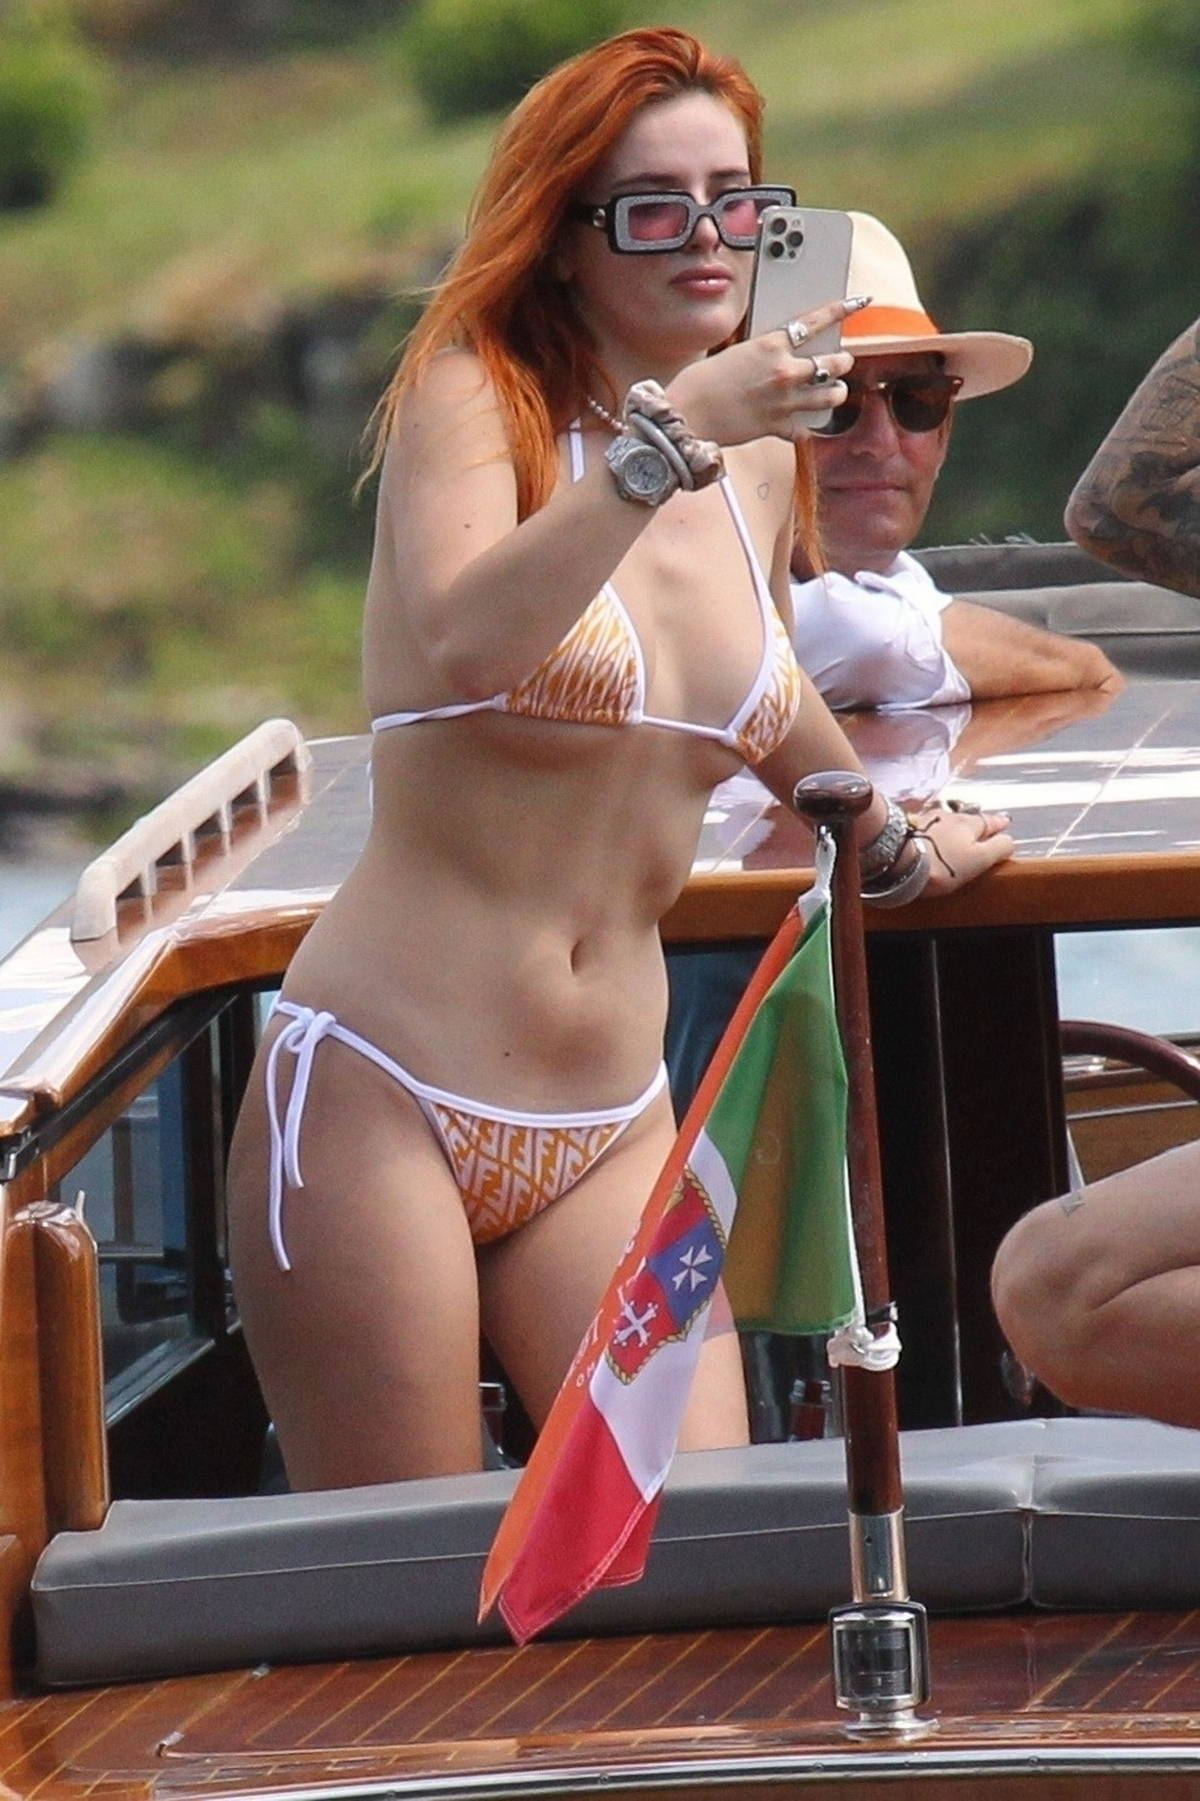 Bella Thorne shows off her curves in a Fendi bikini while enjoying a day on a boat with Benjamin Mascolo, Lake Como, Italy